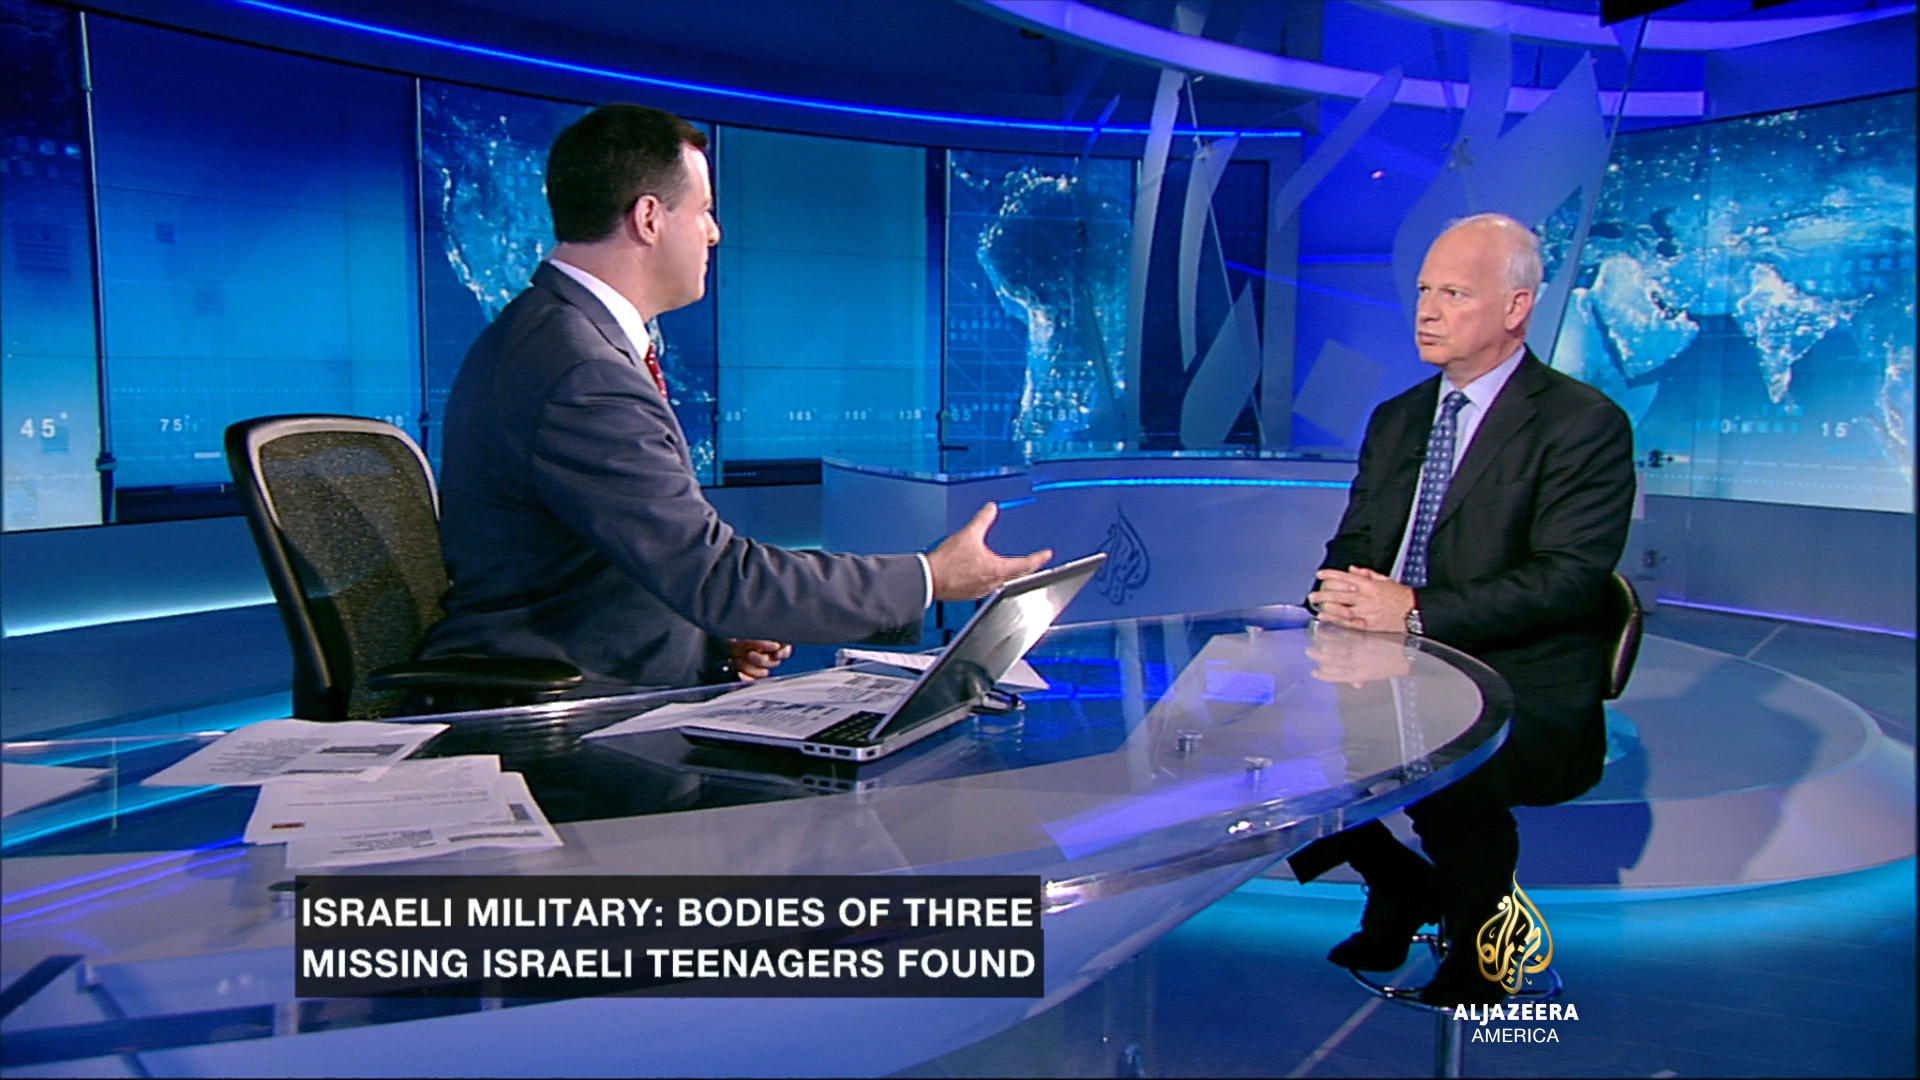 Al Jazeera America anchor David Shuster interviews Alon Pinkas, former Israeli consul general to the United States, in the wake of the bodies of three teens being found last week.